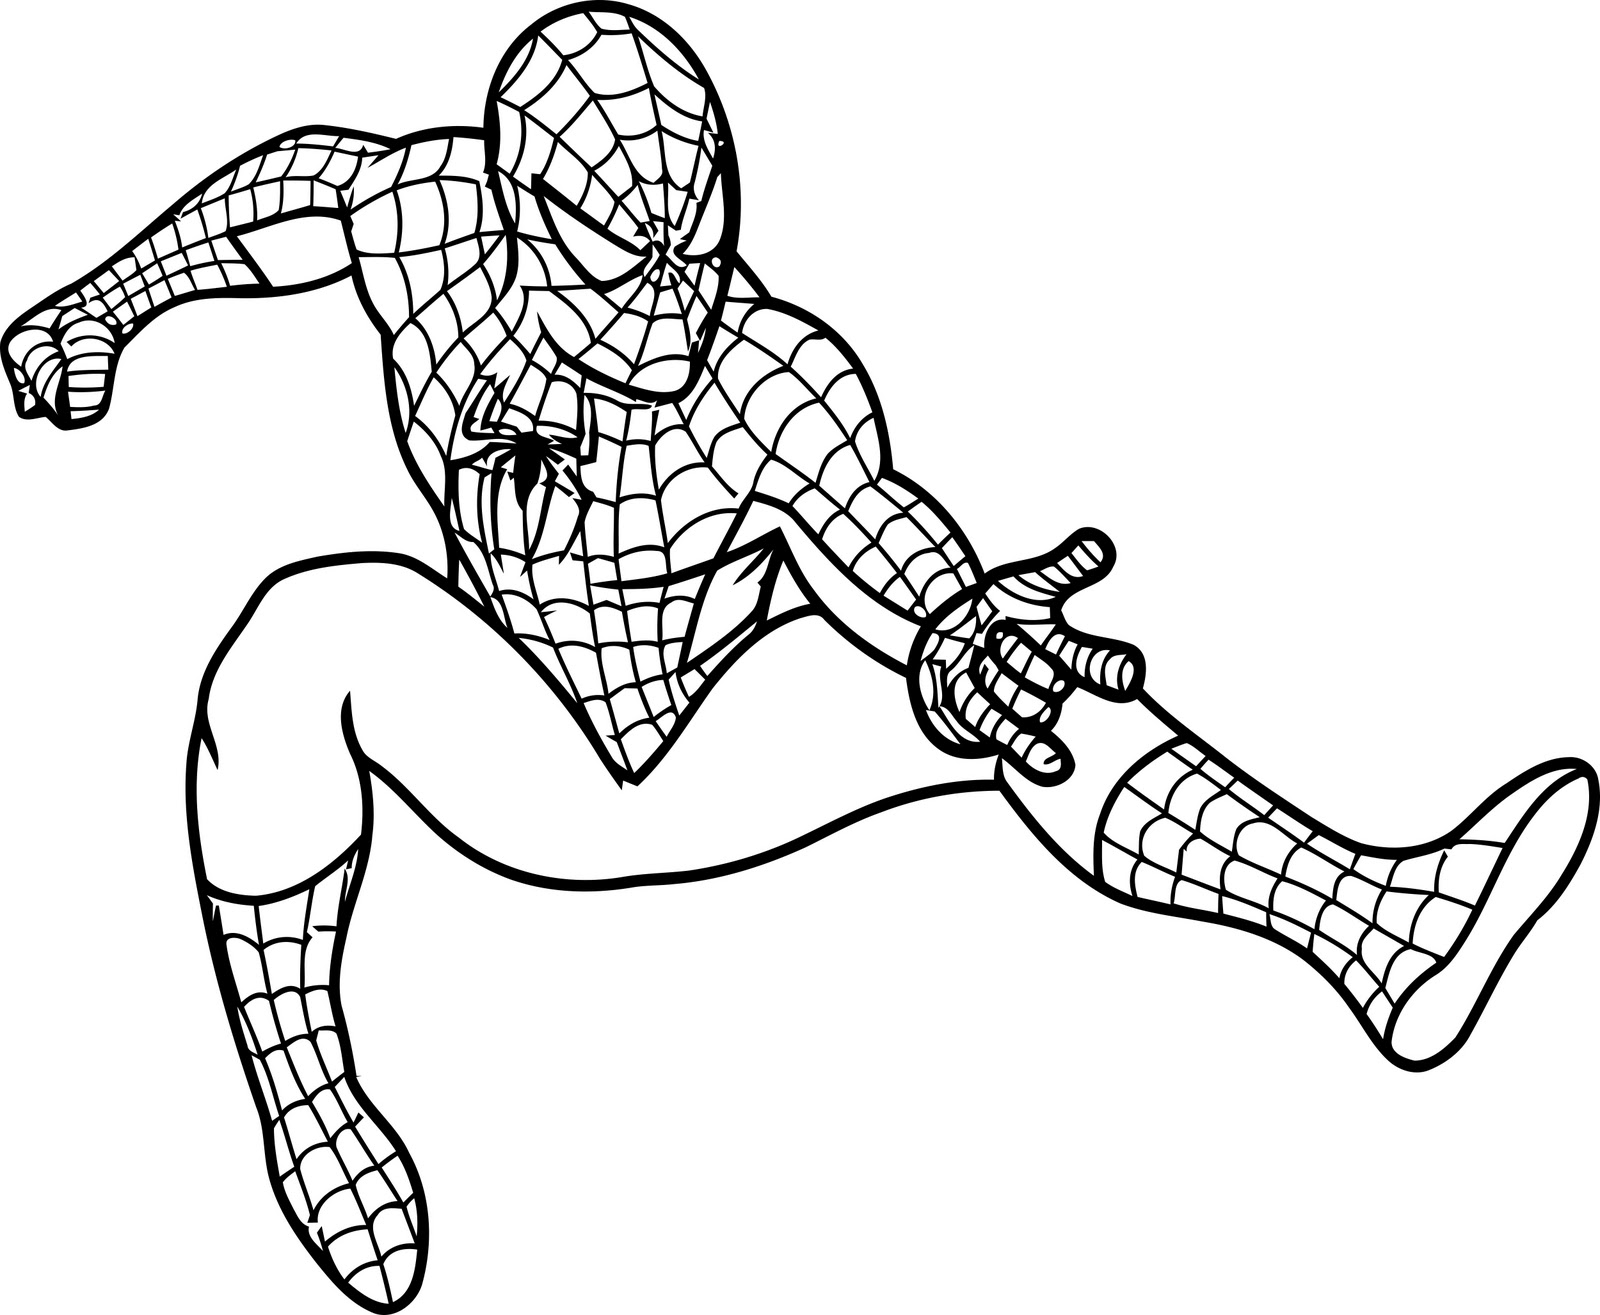 coloring sheet spiderman coloring pages spiderman coloring pages for boys educative printable sheet pages coloring coloring spiderman